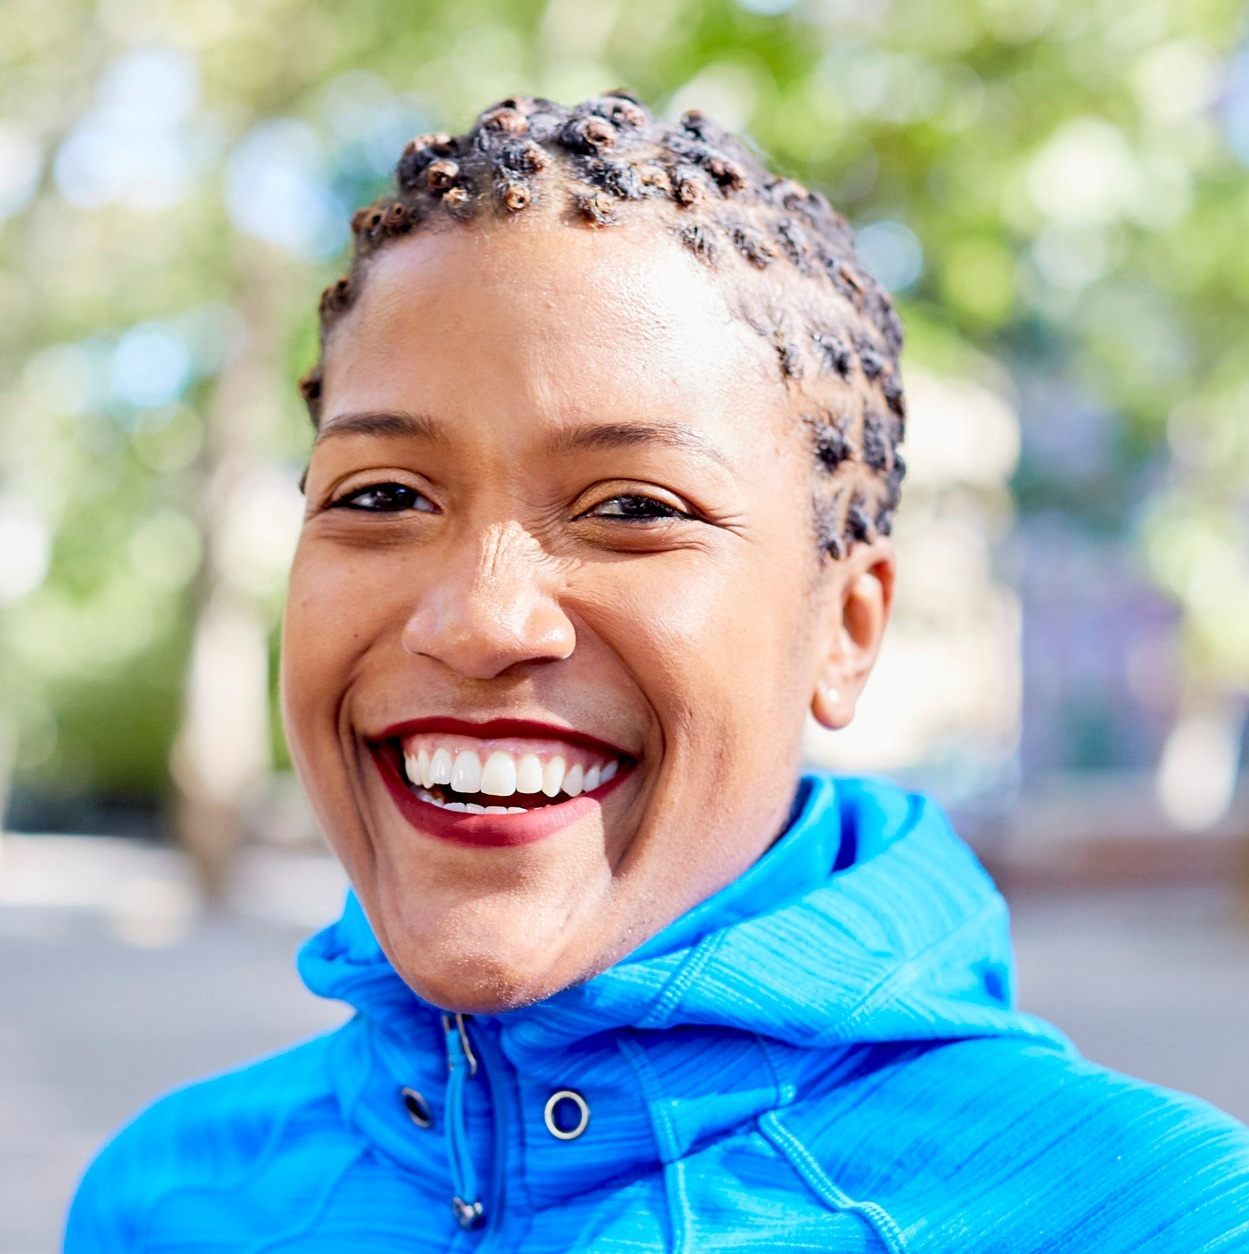 Founder - Alison Mariella DésirNamed by Women's Running as one of twenty women who are changing the sport of running and the world and by The Root 100 as one of the most influential African Americans, ages 25 to 45, Alison is an endurance athlete, activist, and mental health counselor. Alison is the founder of Harlem Run (an NYC-based running movement) and Run 4 All Women. Alison recently wrote the foreword for Running is My Therapy, by NYTimes best-selling author Scott Douglas.